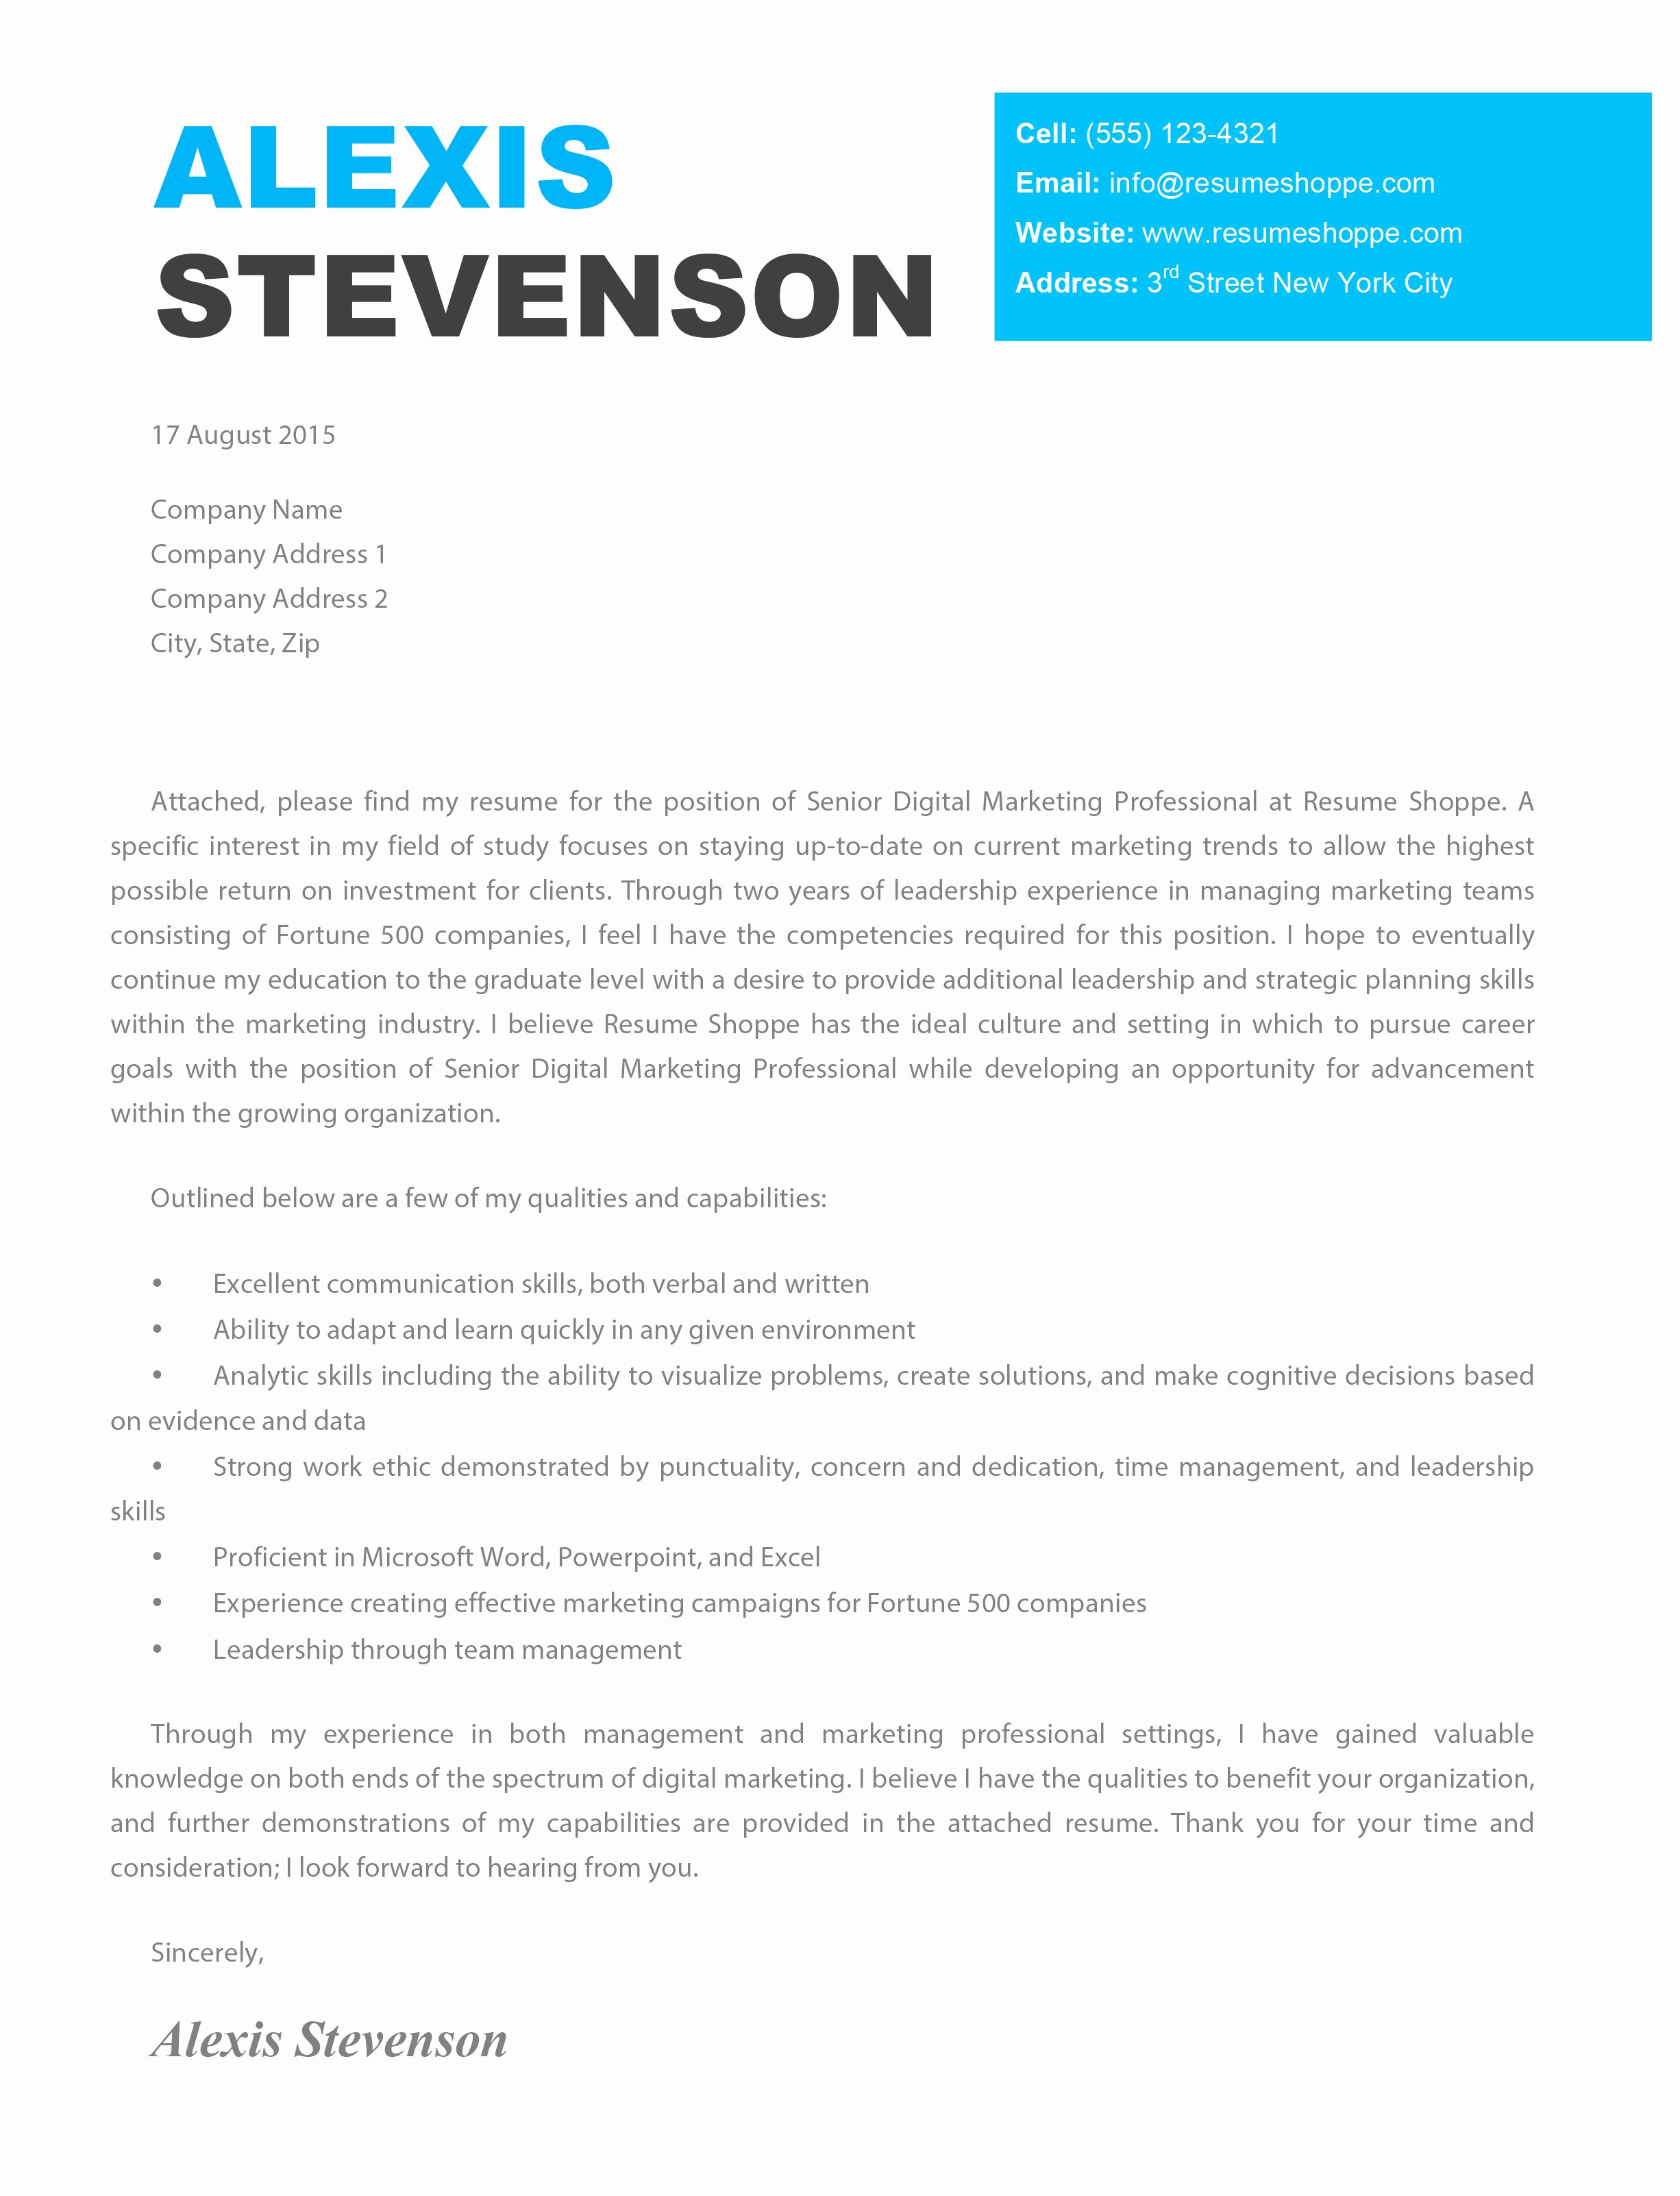 Free Creative Cover Letter Templates Inspirational the Alexis Cover Letter Creative Cover Letter